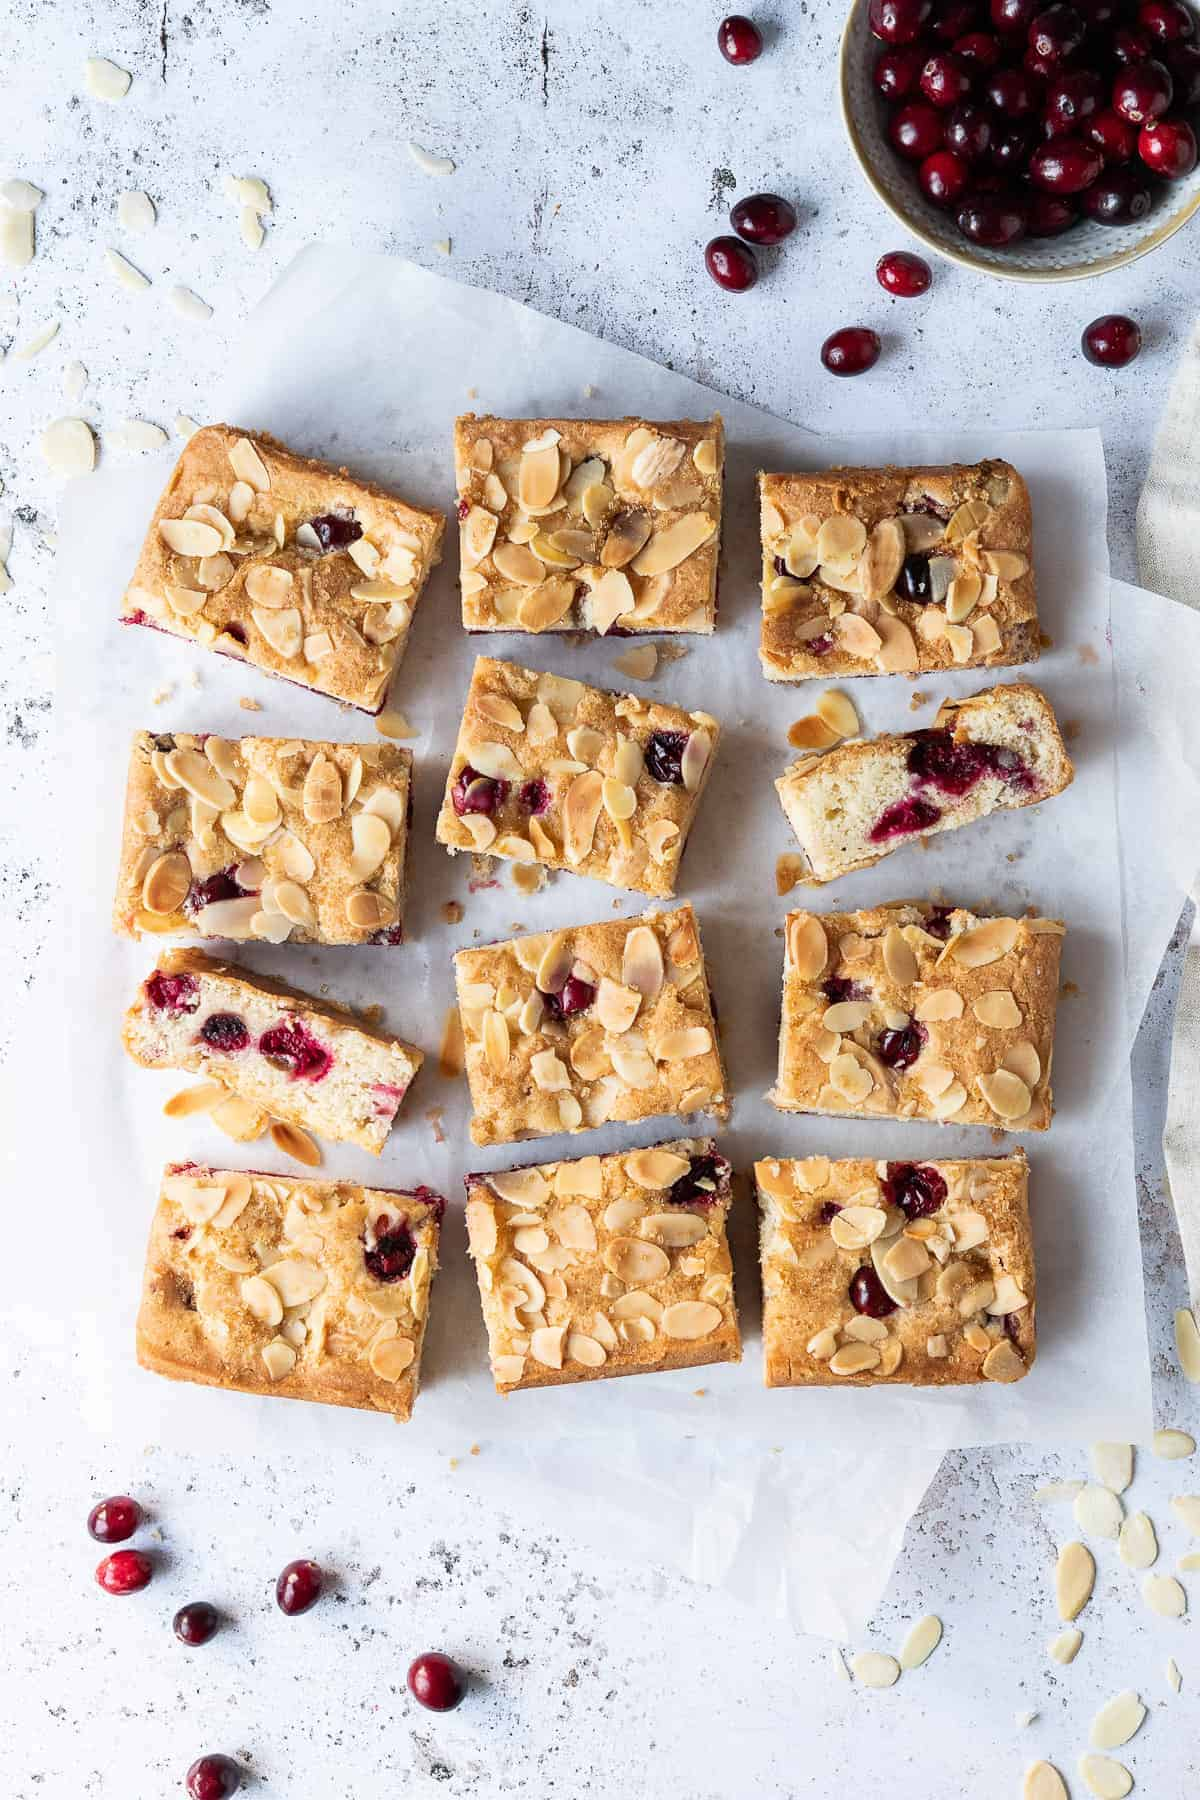 Vegan almond cranberry cake sliced into bars on a sheet of baking parchment on a white background with a bowl of fresh cranberries.